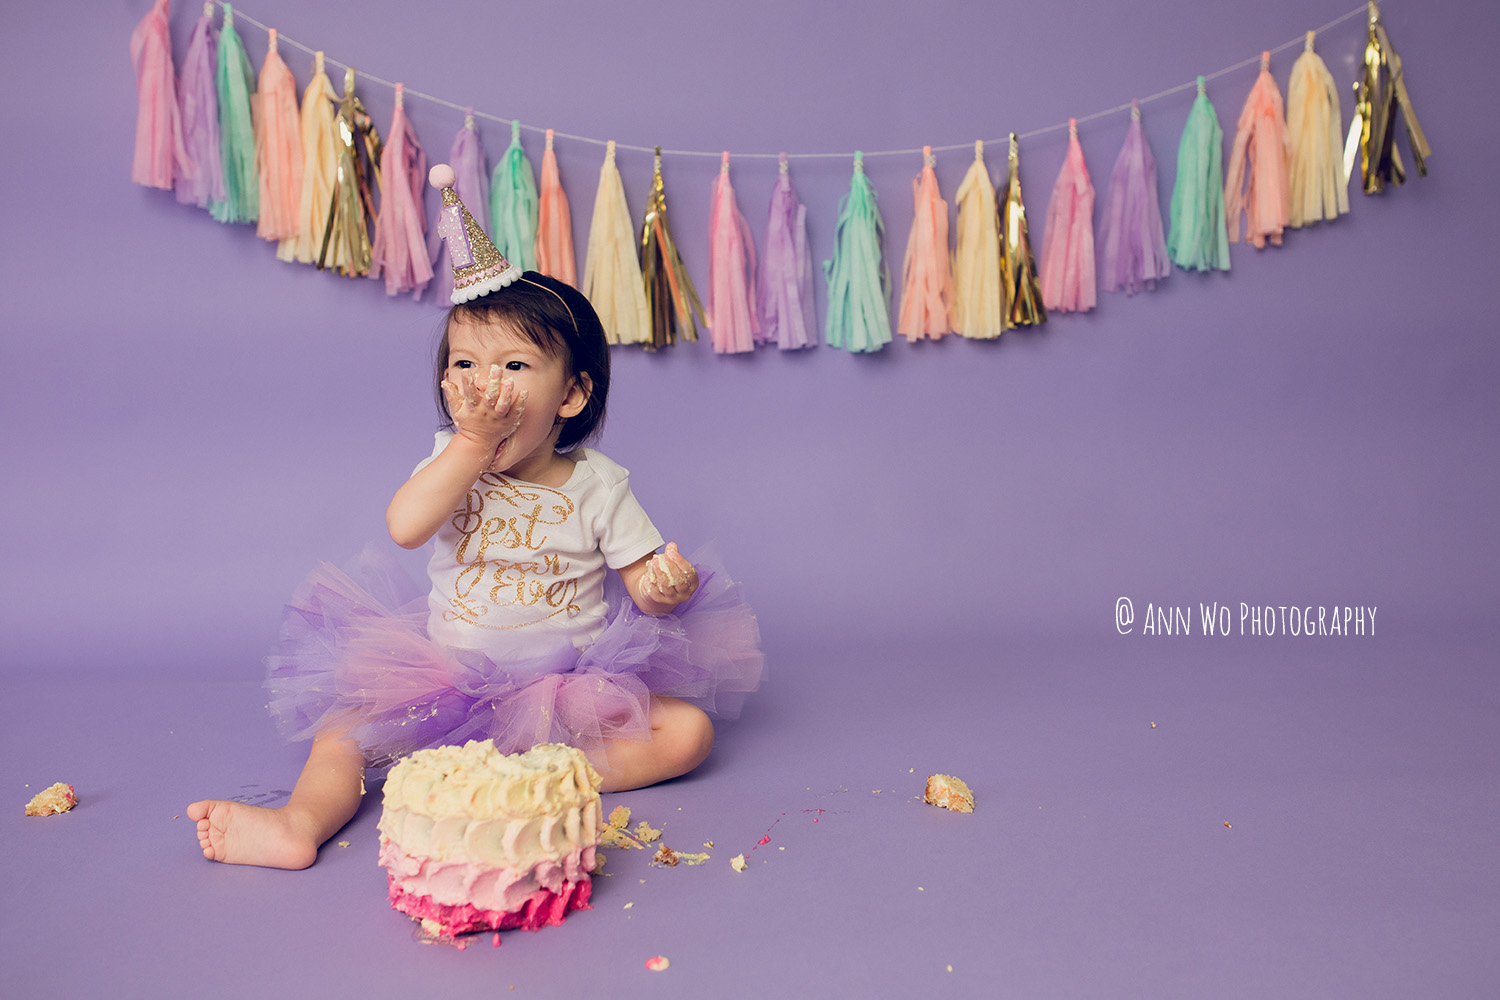 cake-smash-photography-ann-wo-london.jpg